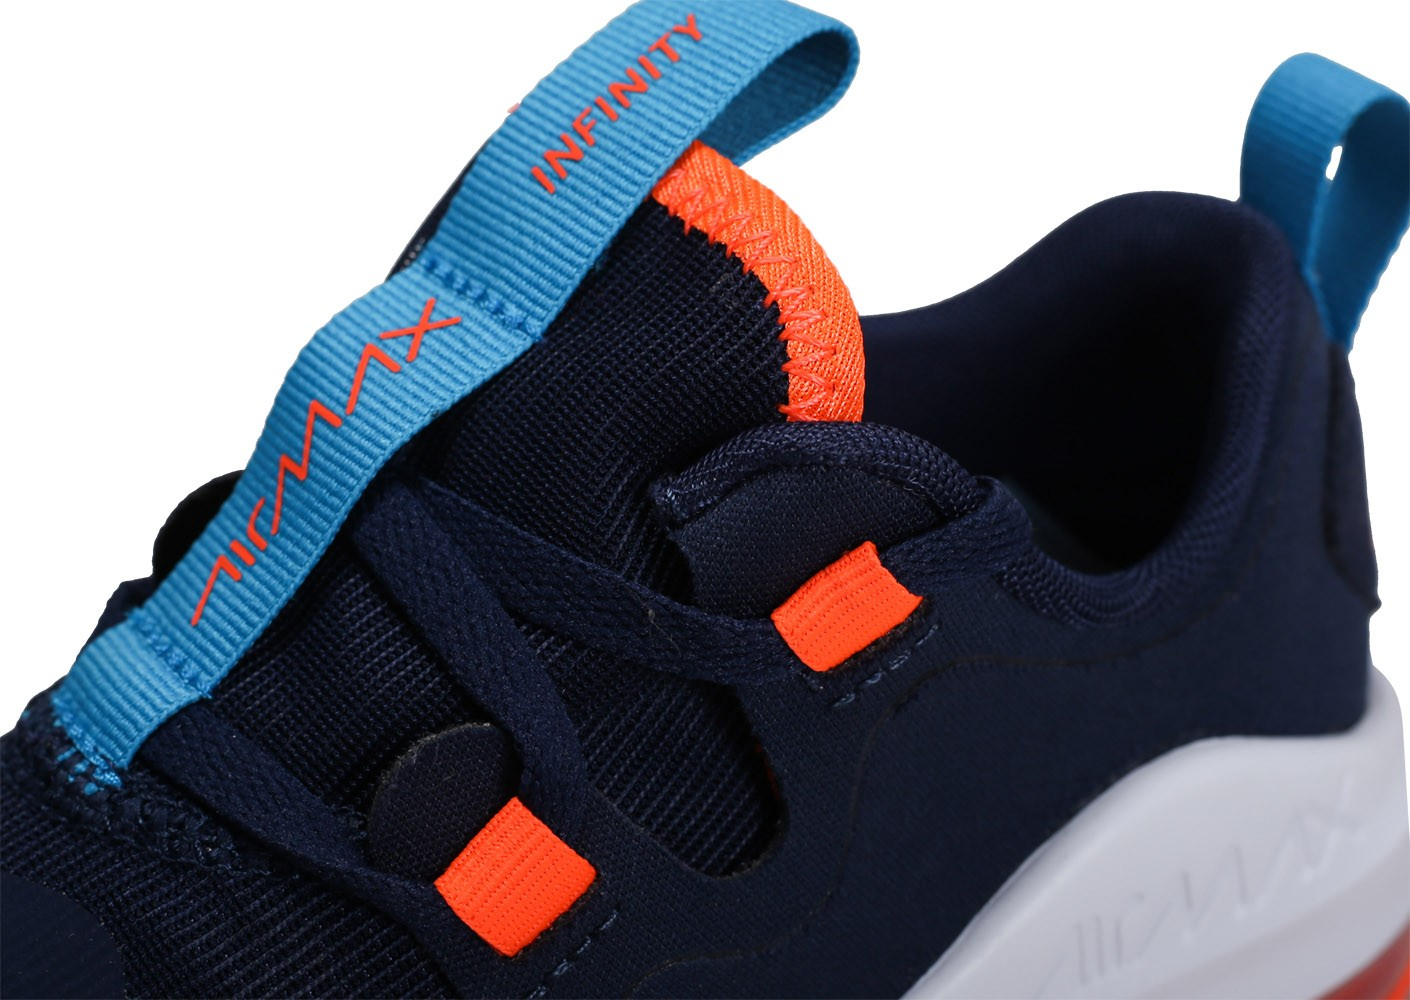 Nike Air Max Infinity bleu marine orange Junior Chaussures